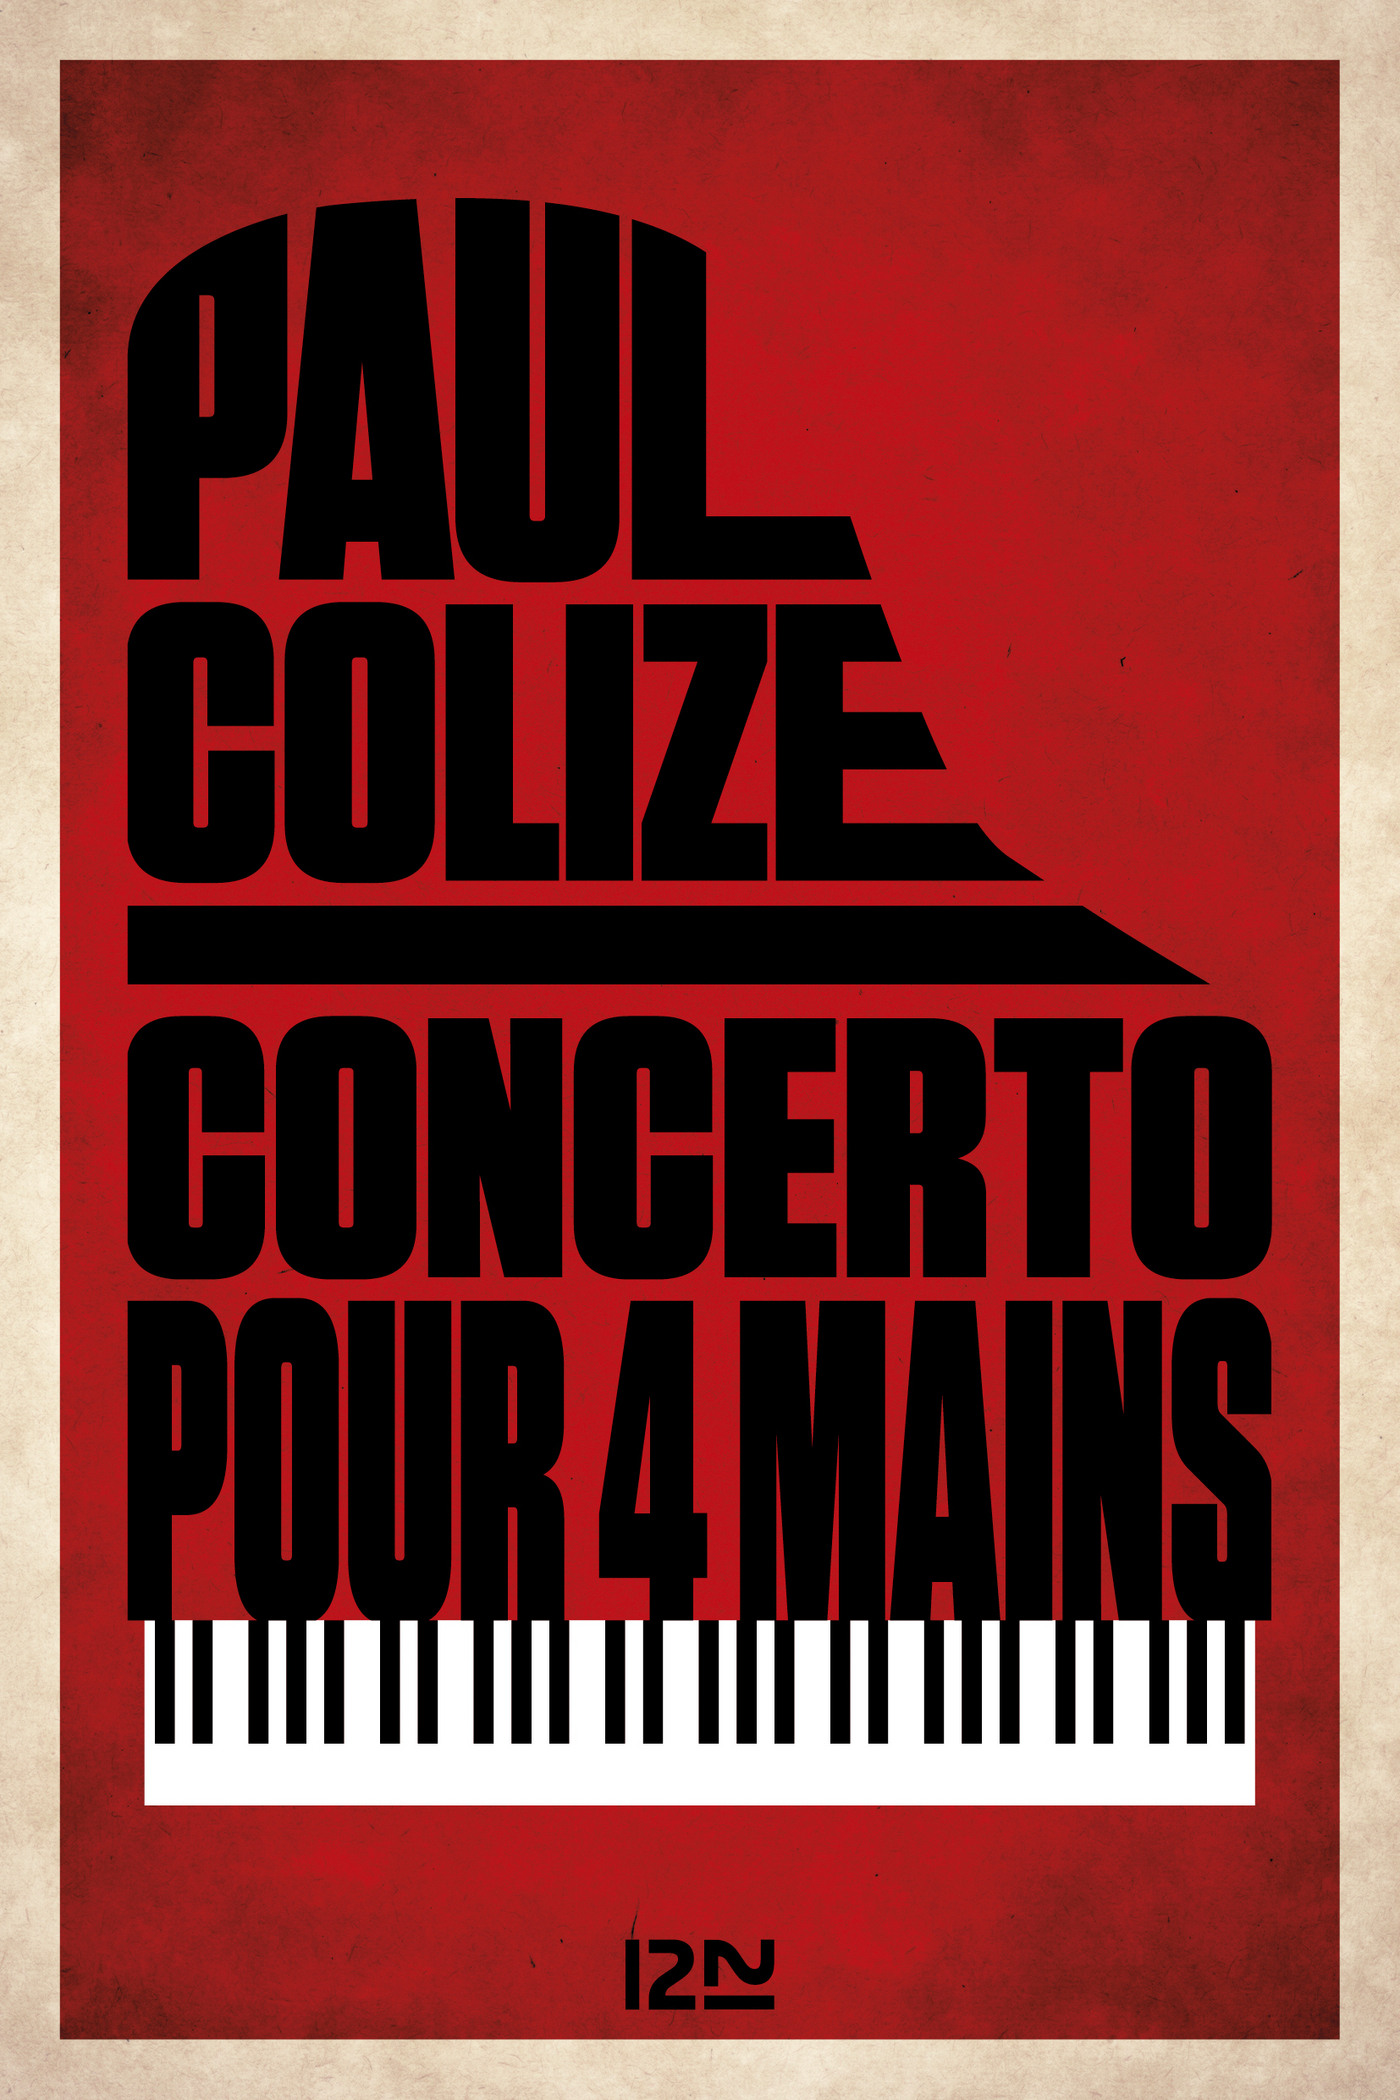 Concerto pour quatre mains | COLIZE, Paul